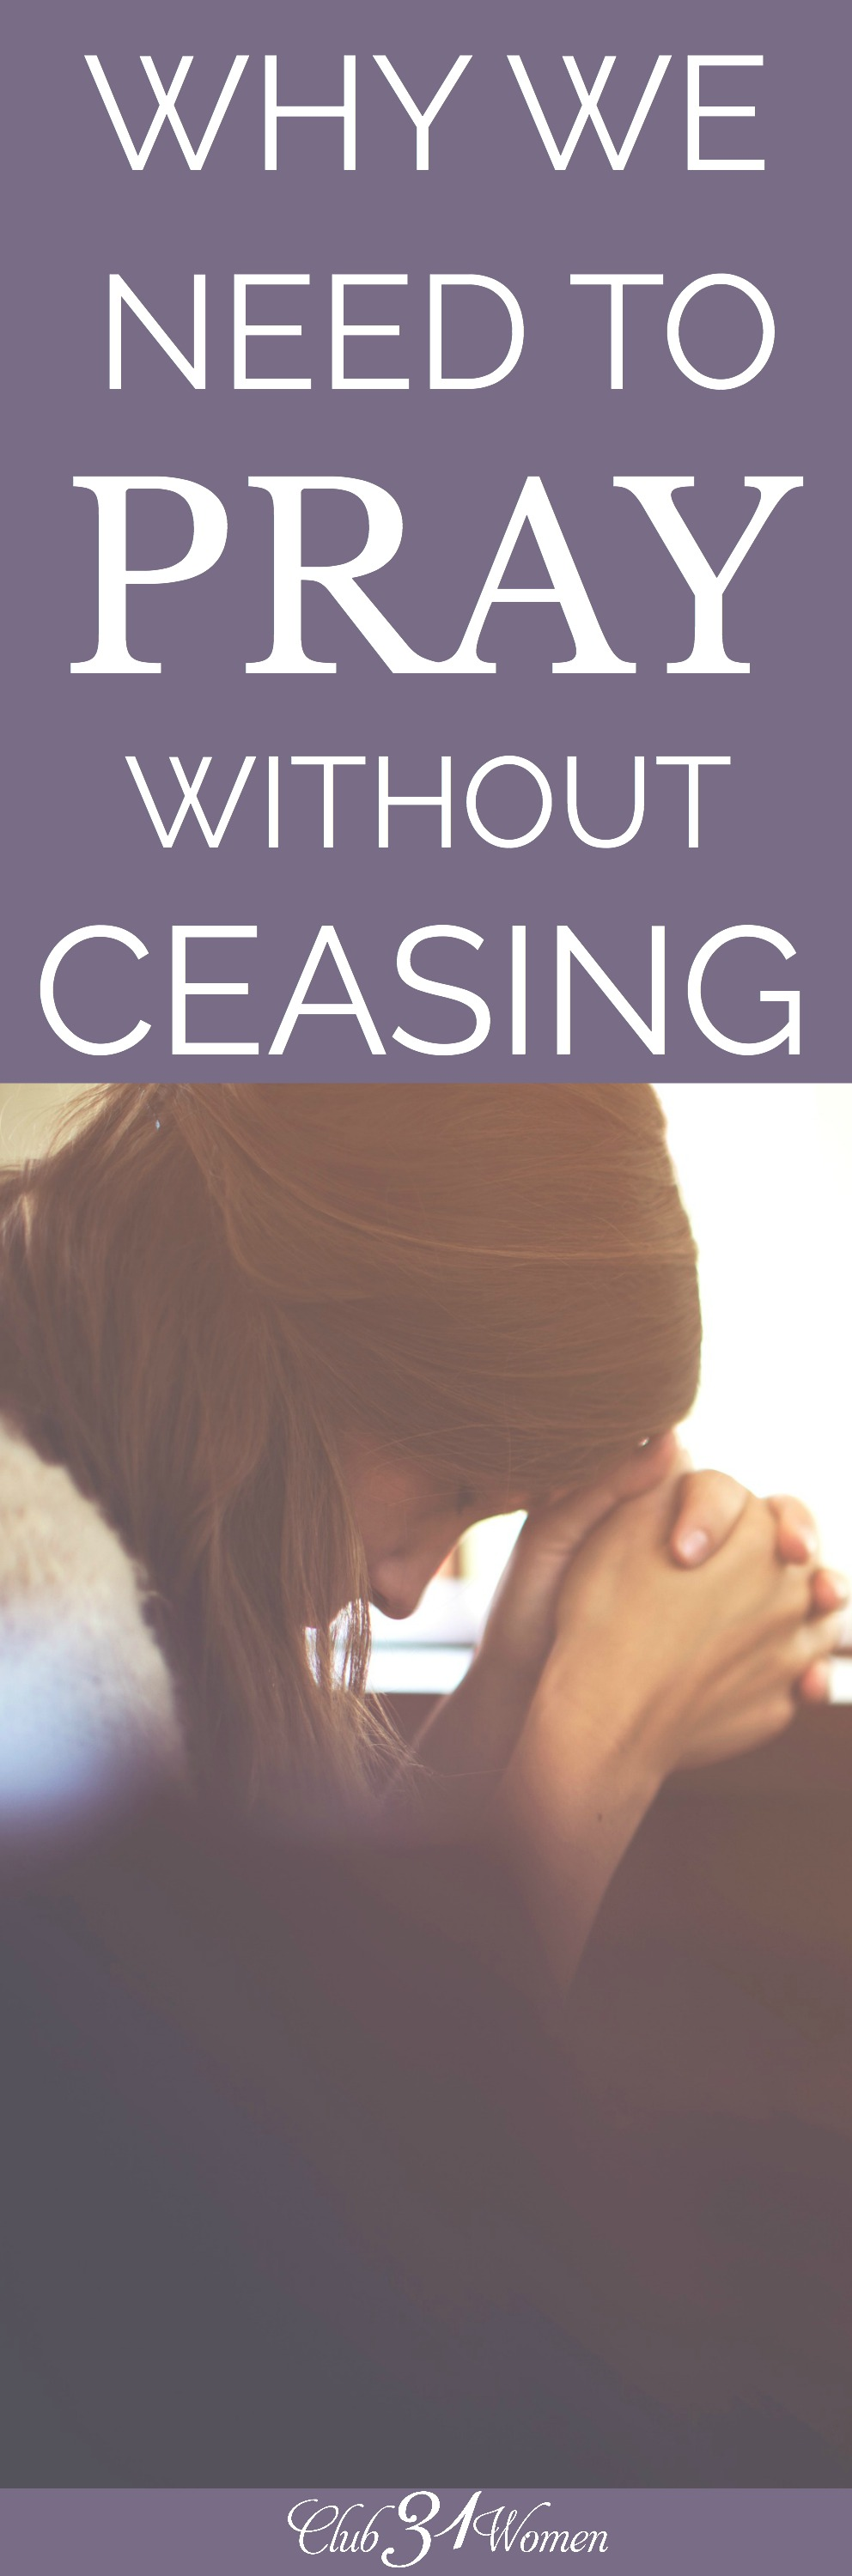 We often forget what God can do when His people pray. Even through the everyday mundane, He wants us to go to Him in prayer and lay our burdens down.  via @Club31Women